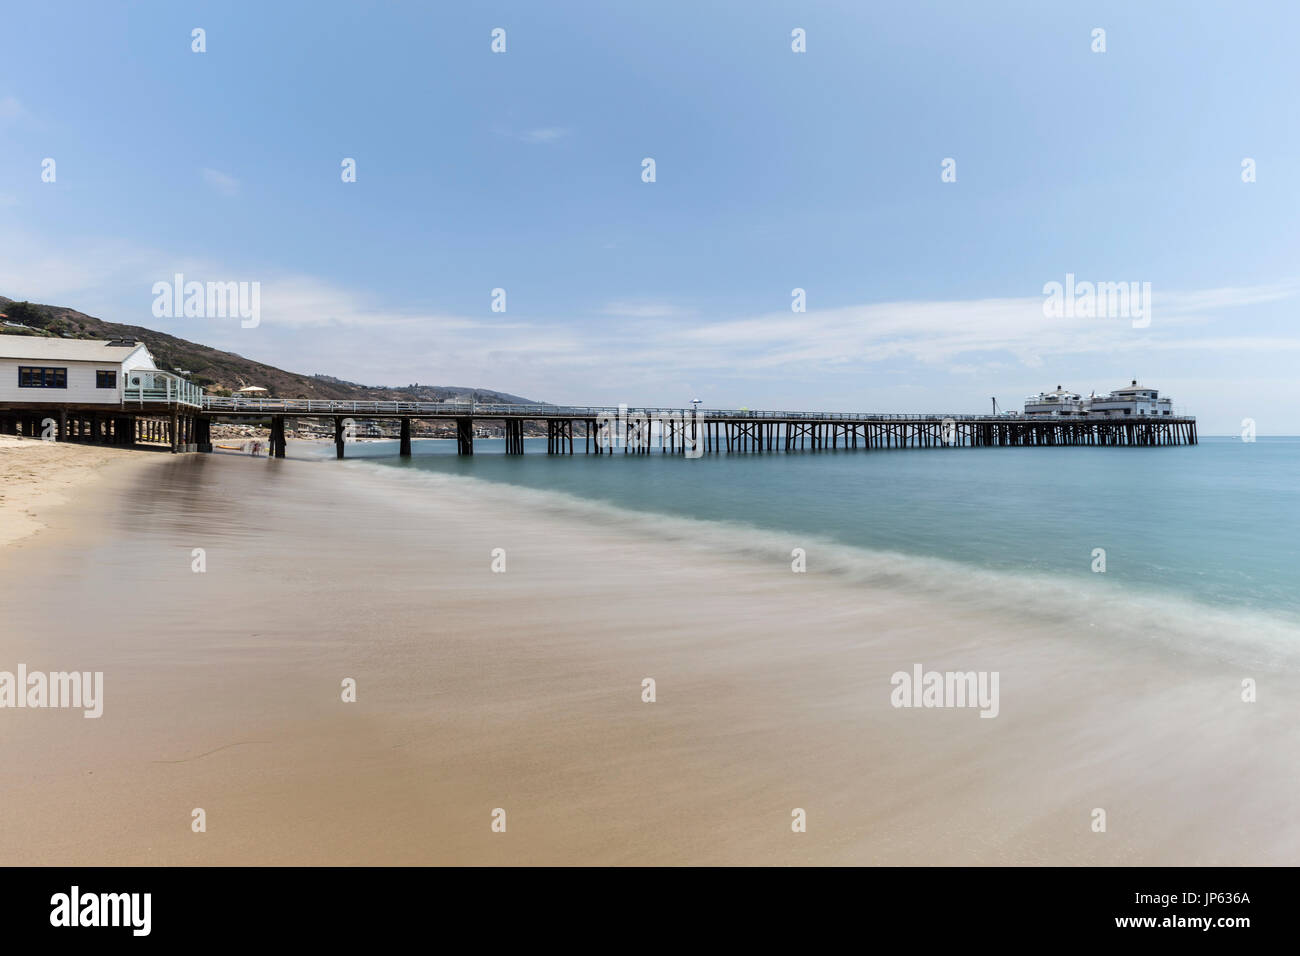 Malibu Pier beach with motion blur pacific ocean water near Los Angeles in Southern California. - Stock Image